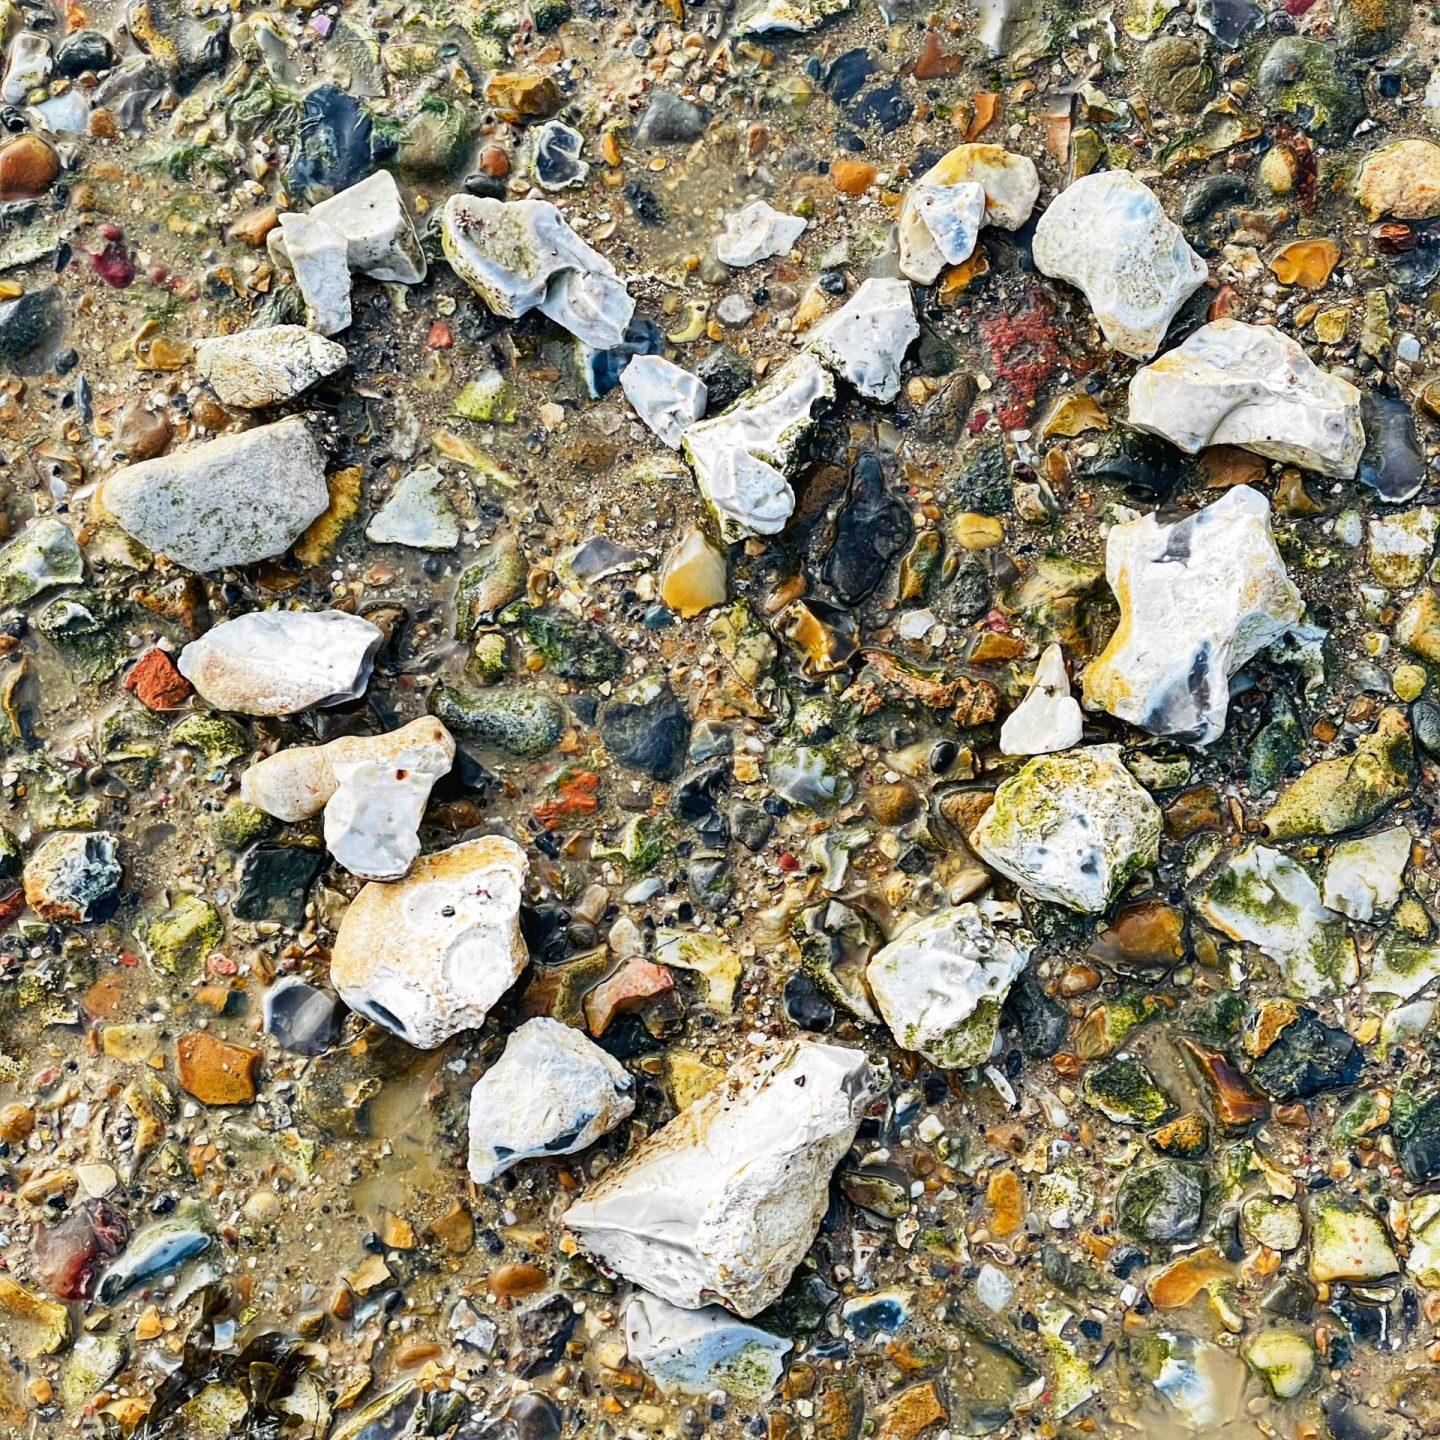 Heart made of pebbles on a beach